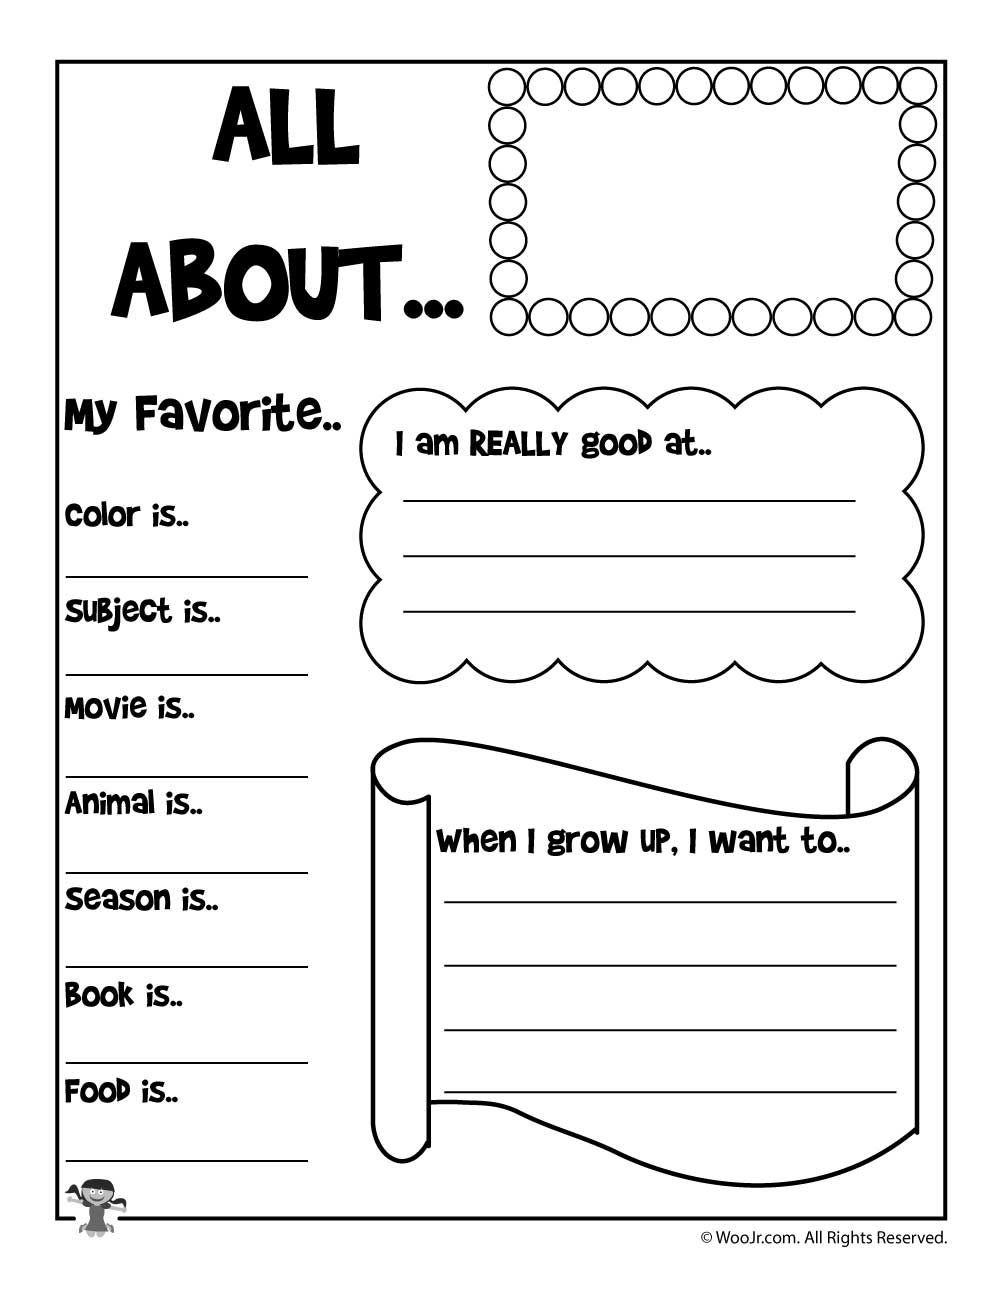 All About Me Worksheet Preschool Printable About Me Worksheets